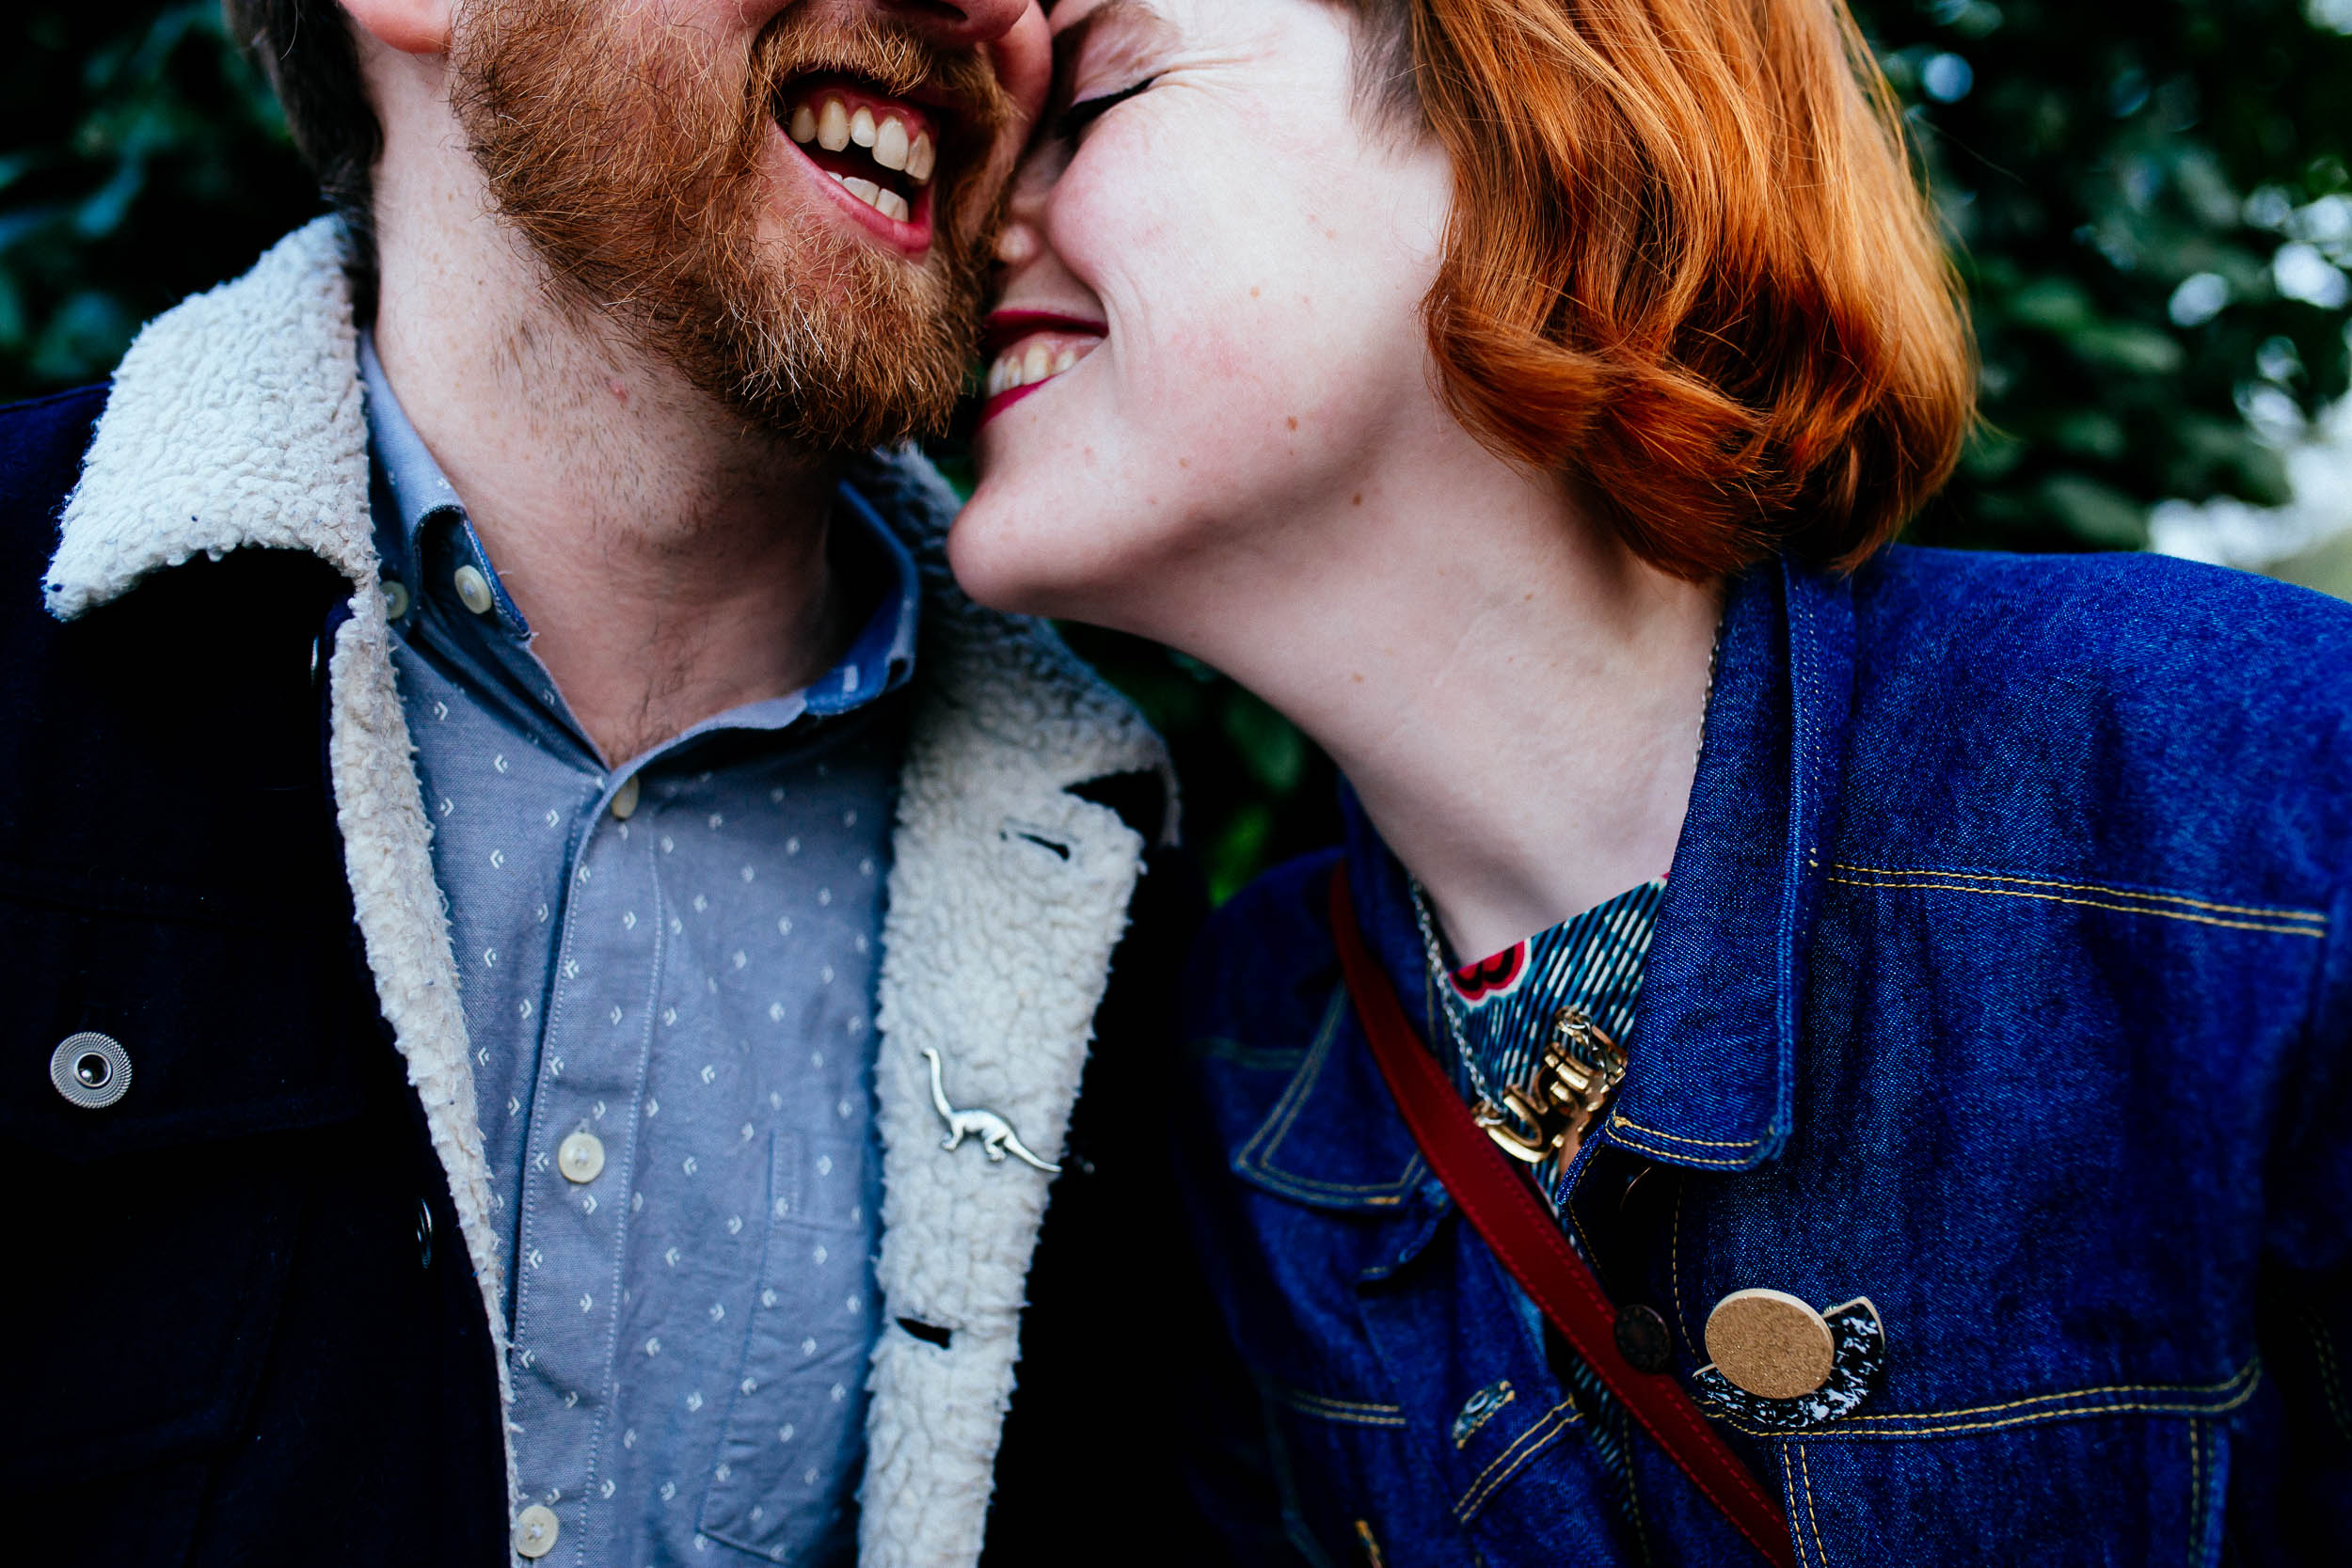 rhiannon & Jack - birmingham wedding photographer natural relaxed creative 0012.jpg